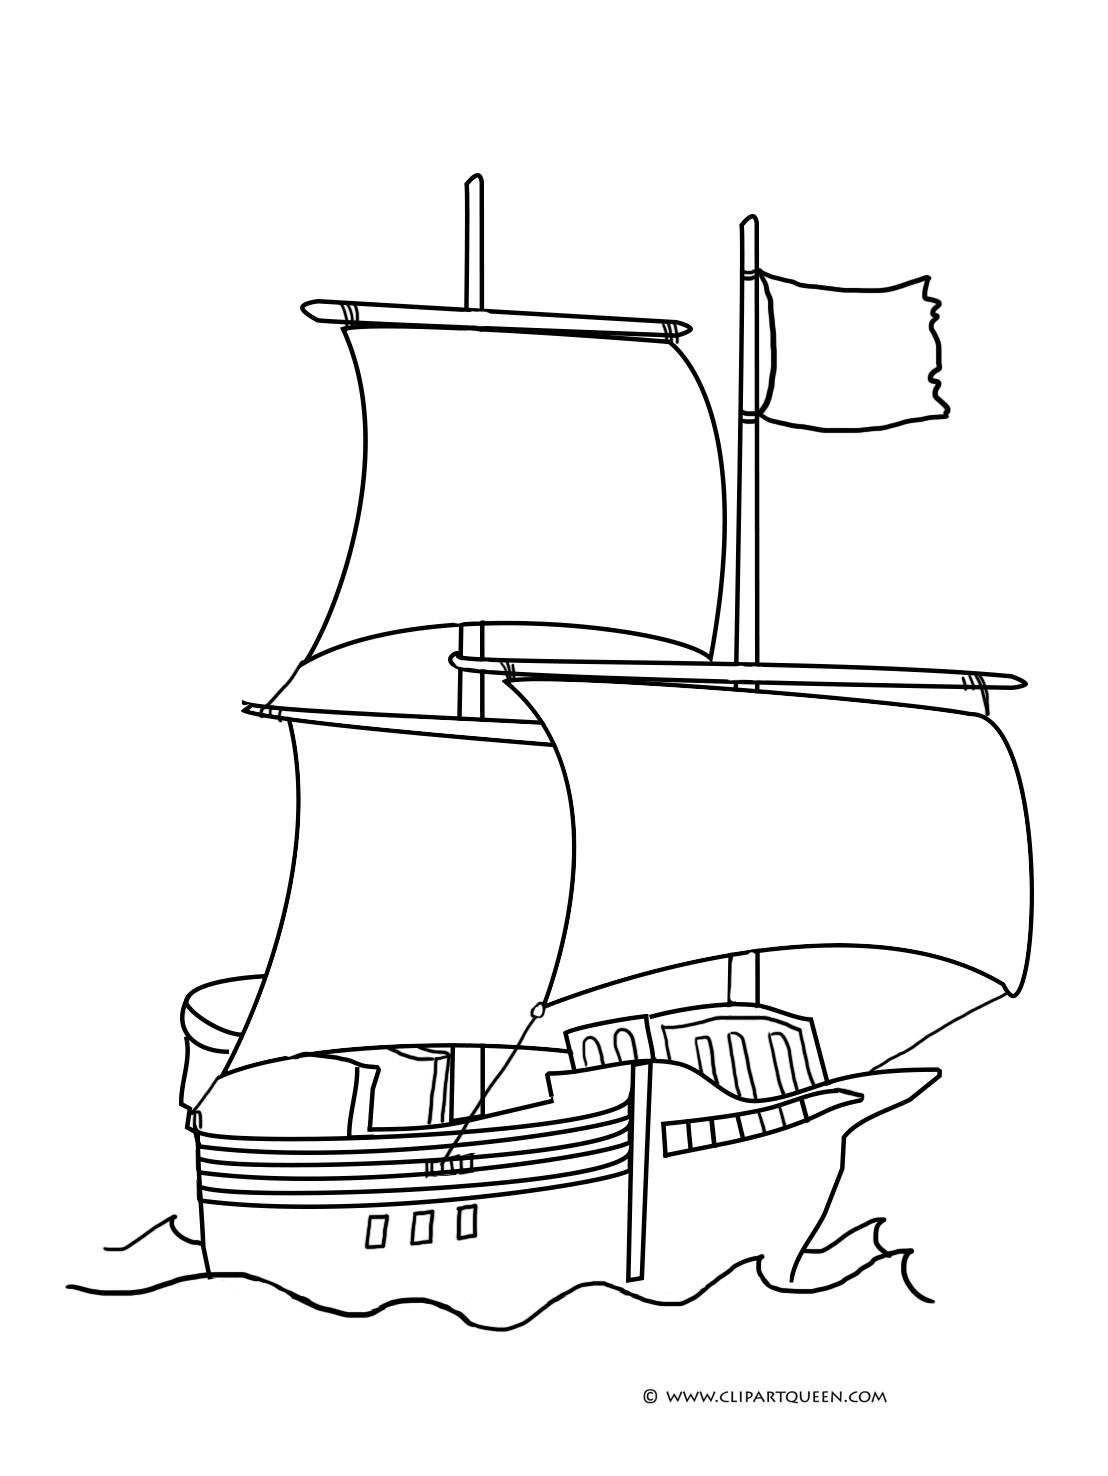 Simple Boat Drawing at GetDrawings.com | Free for personal use ...